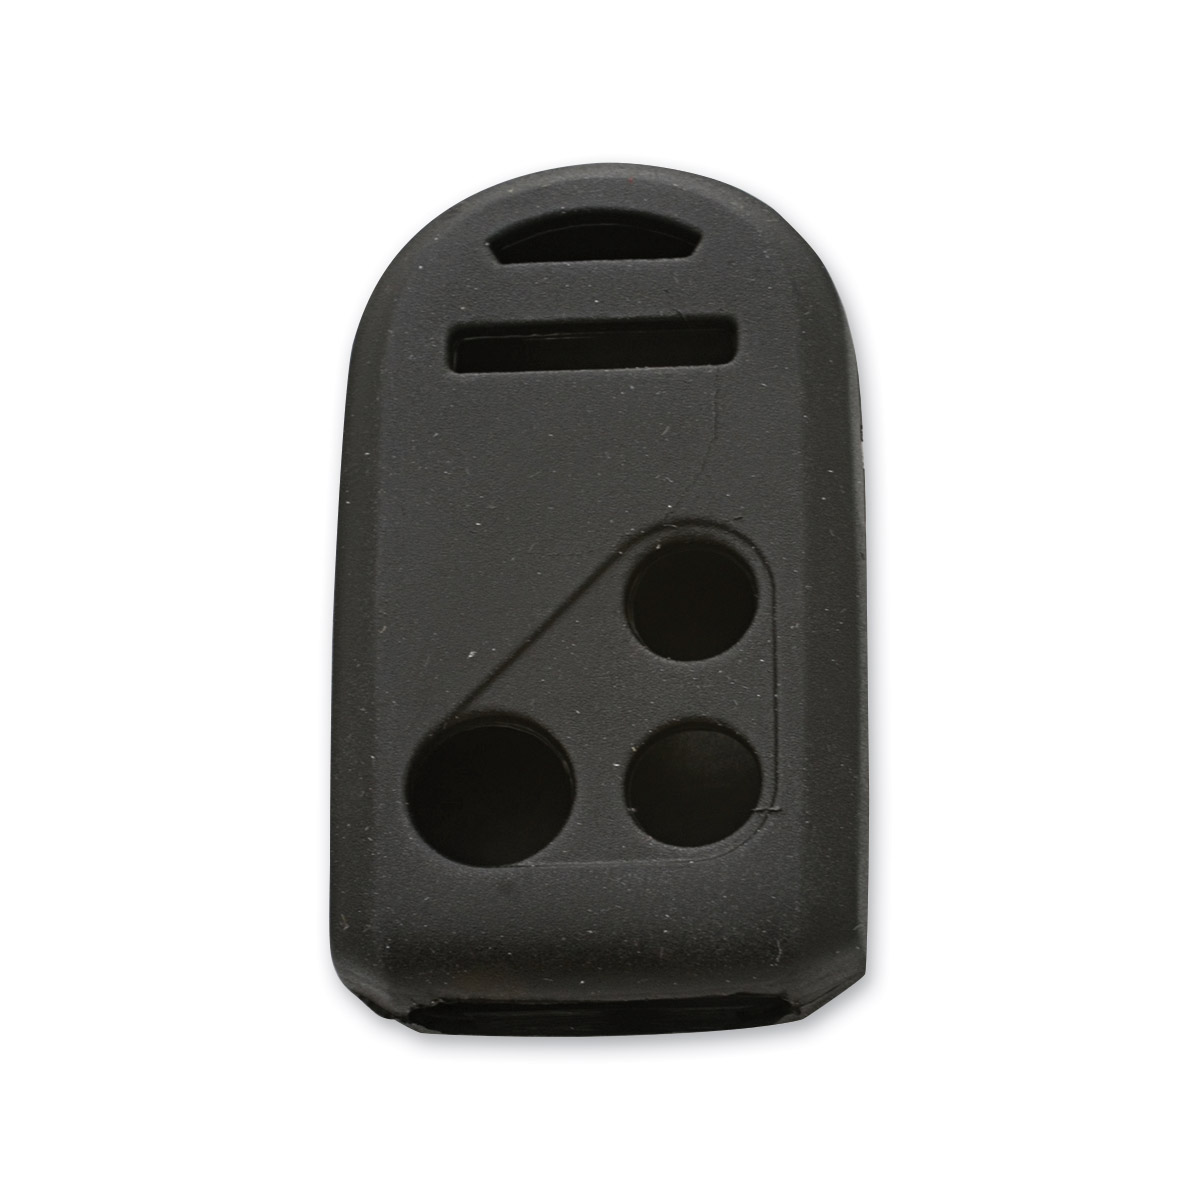 Add On Remote Key Cover